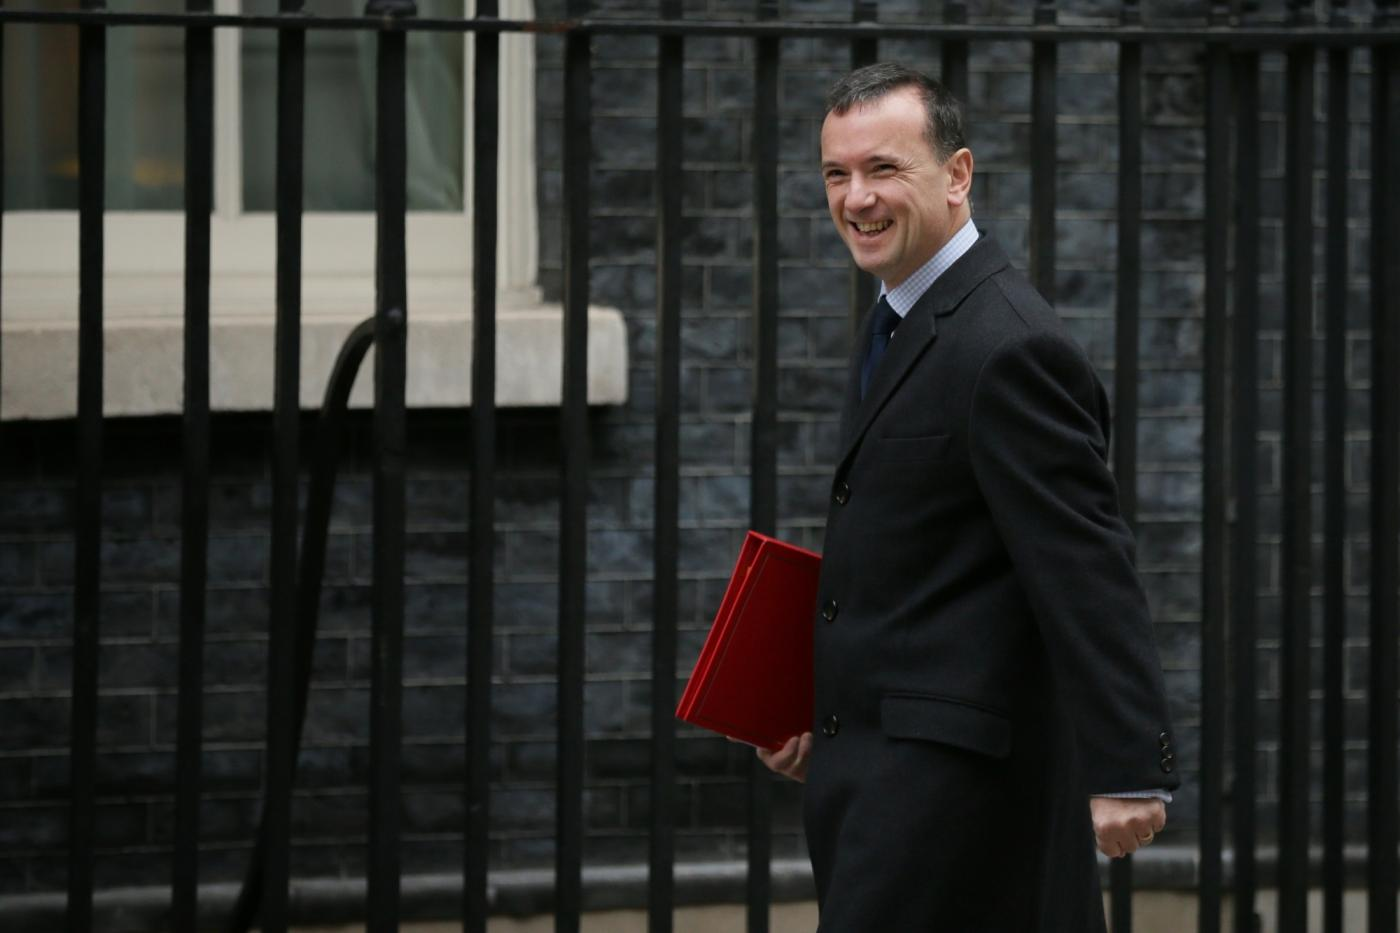 LONDON, Nov. 26, 2018 (Xinhua) -- British Secretary of State for Wales Alun Cairns arrives for a cabinet meeting at 10 Downing Street in London, Britain, on Nov. 26, 2018. The British parliament's vote on Brexit deal is expected to be held on Dec. 11, British Prime Minister Theresa May confirmed on Monday. (Xinhua/Tim Ireland/IANS) by .